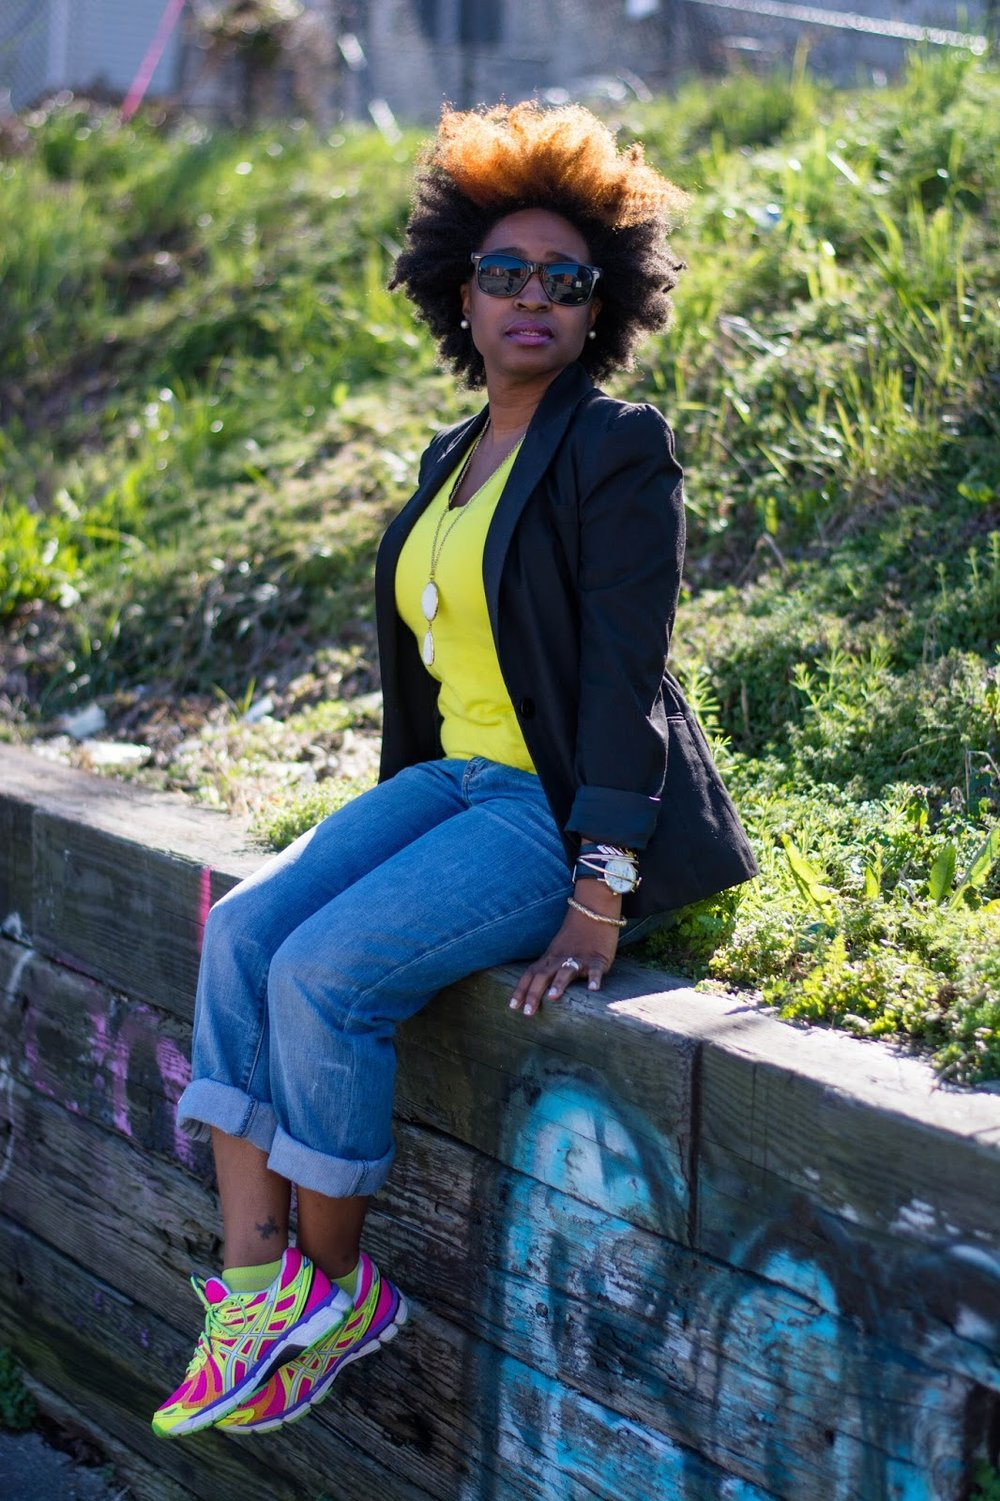 style blogger, street style, athleisure, sports inspired, Atlanta blogger, pink sneakers, black blazer, natural hair, black blogger, black girl magic